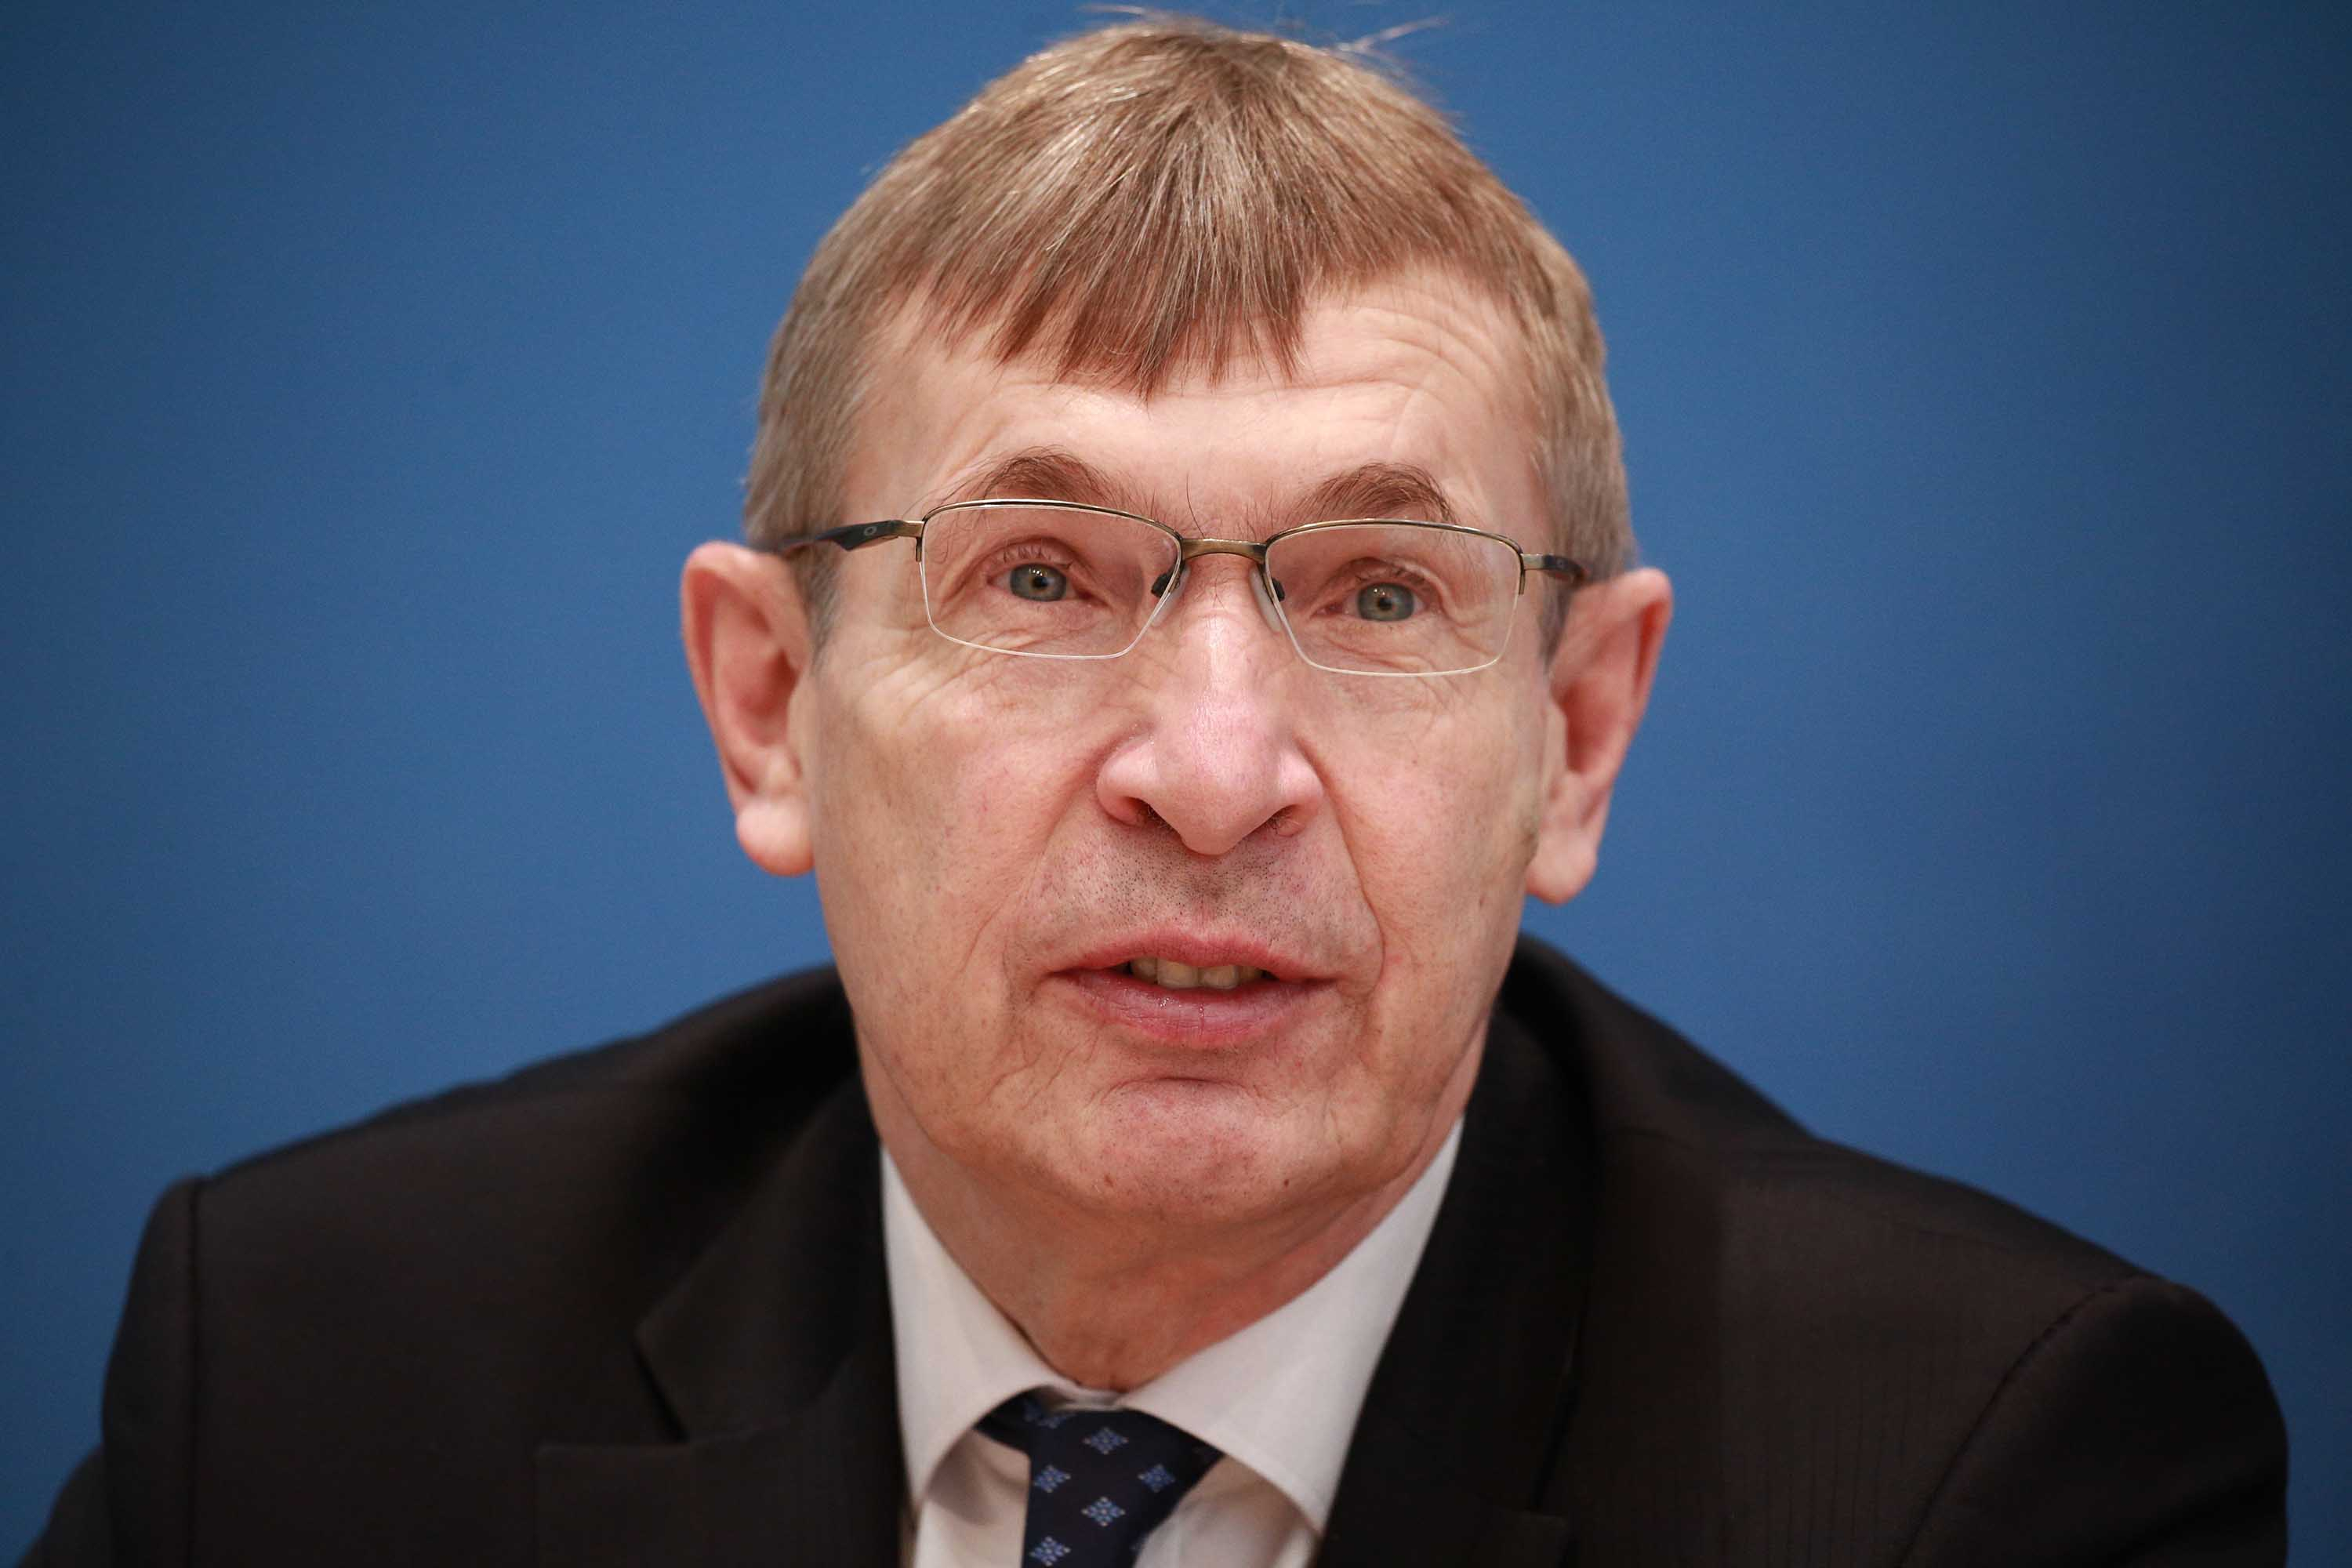 Klaus Cichutek, President of the Paul Ehrlich Institute, addresses a press conference in Berlin, Germany, on January 29.